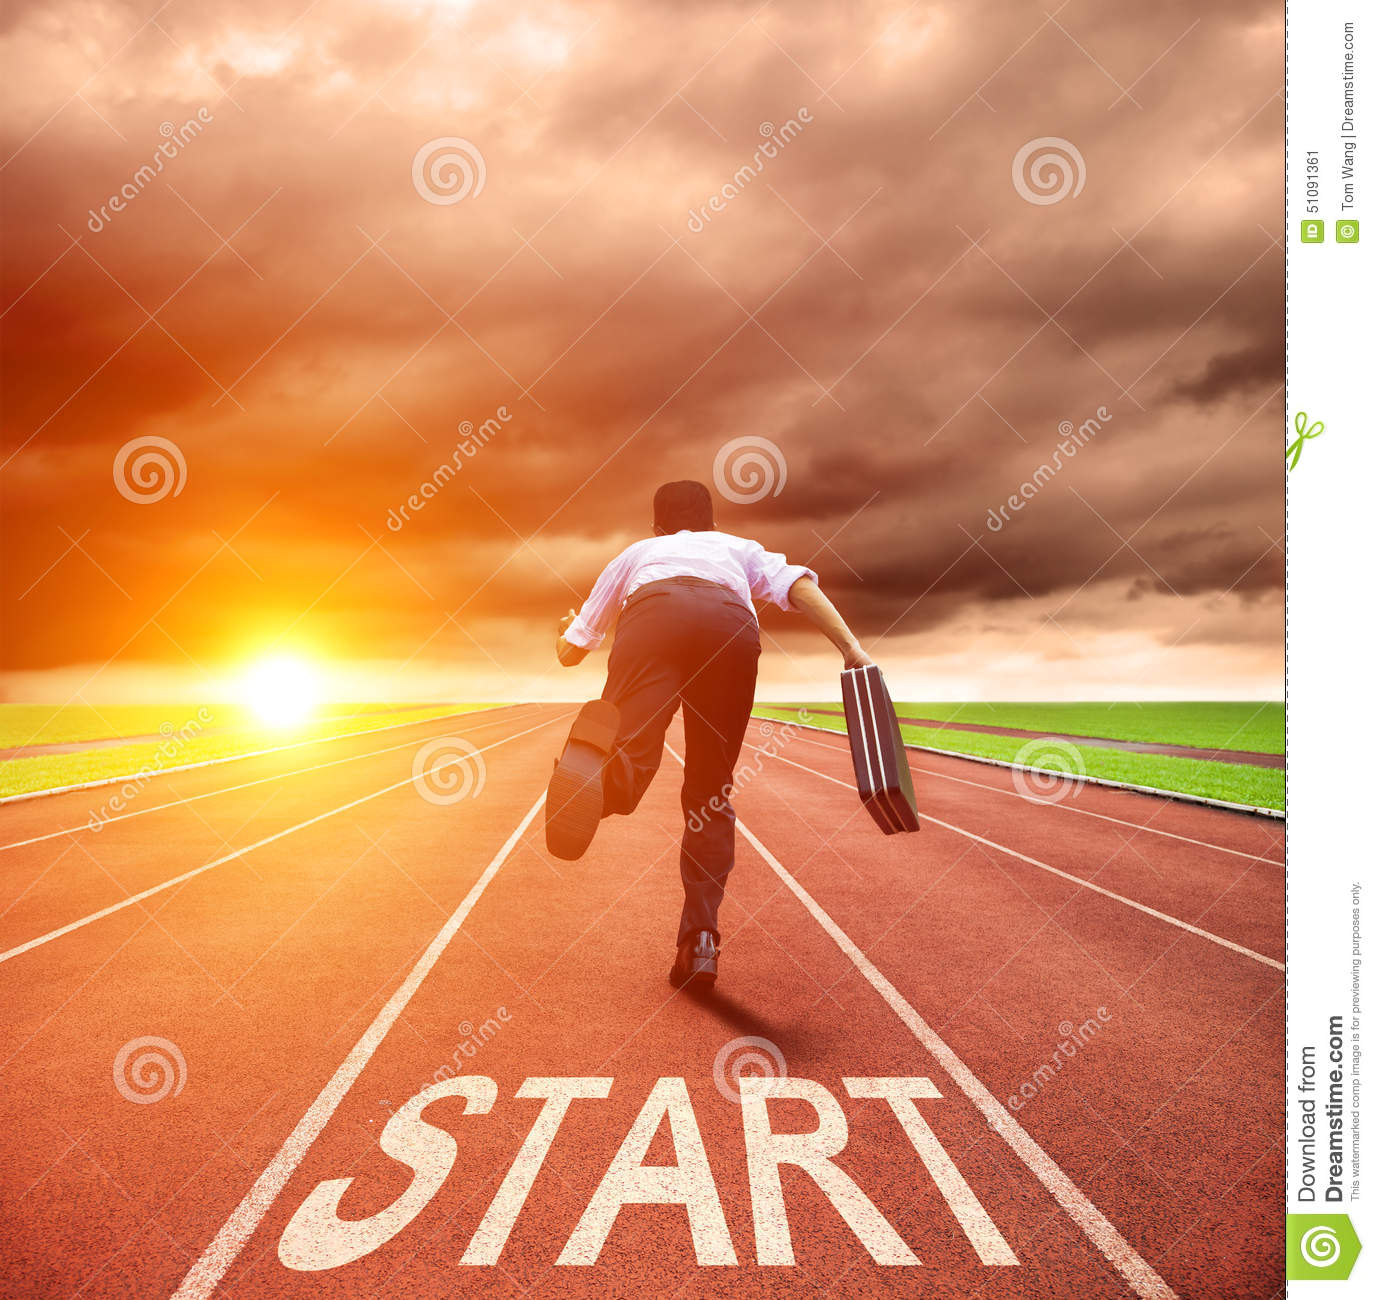 Businessman running for race on the track